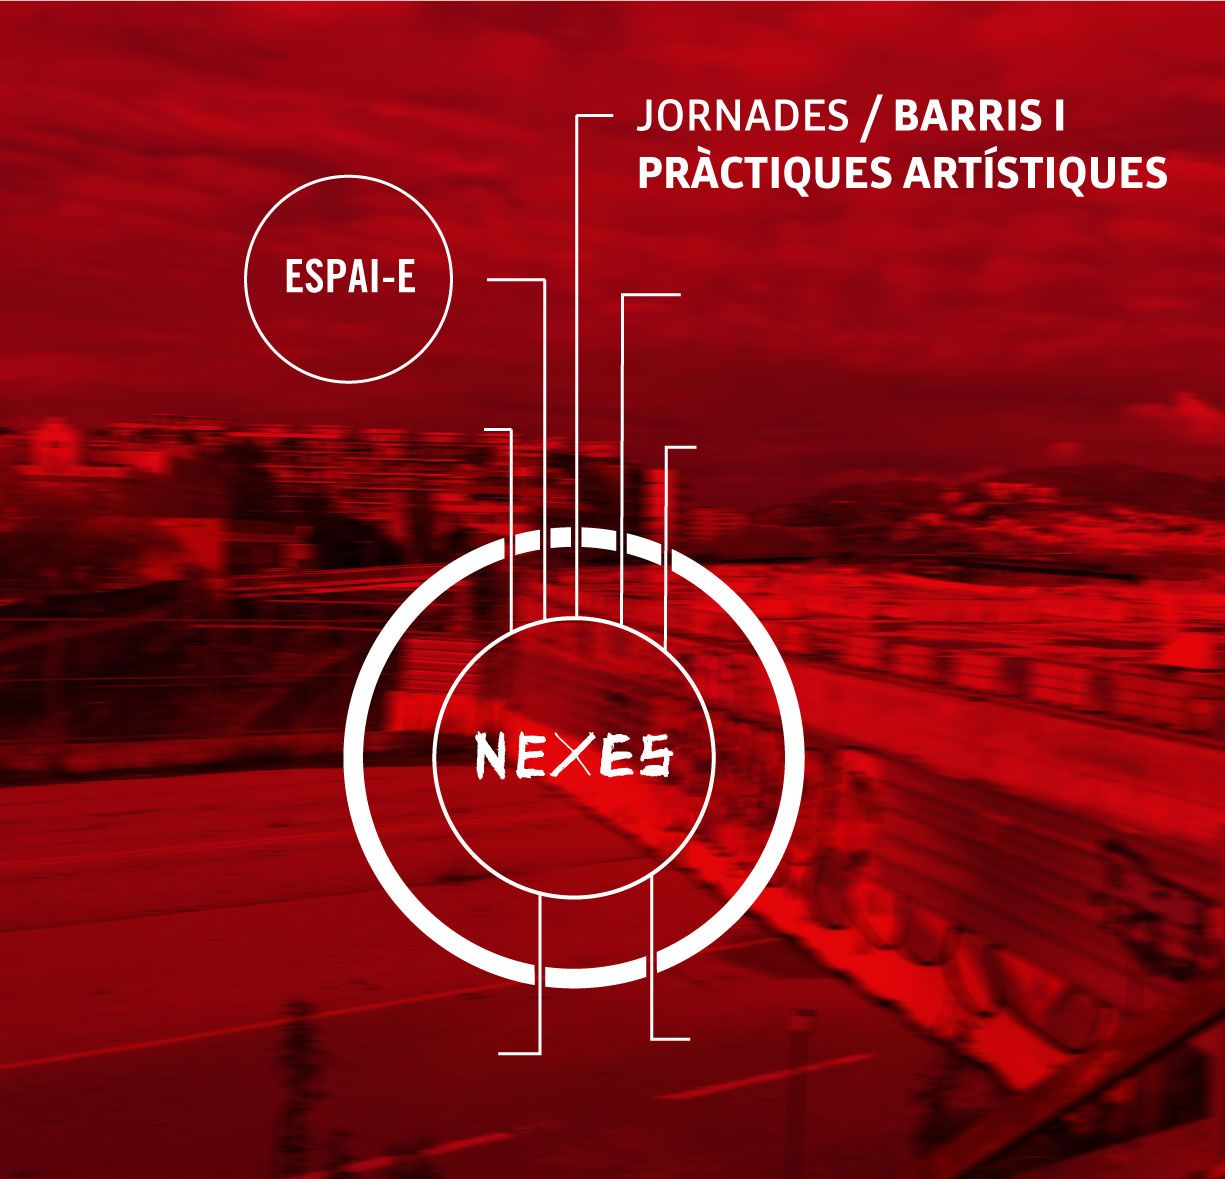 NEXES JORNASES CAT